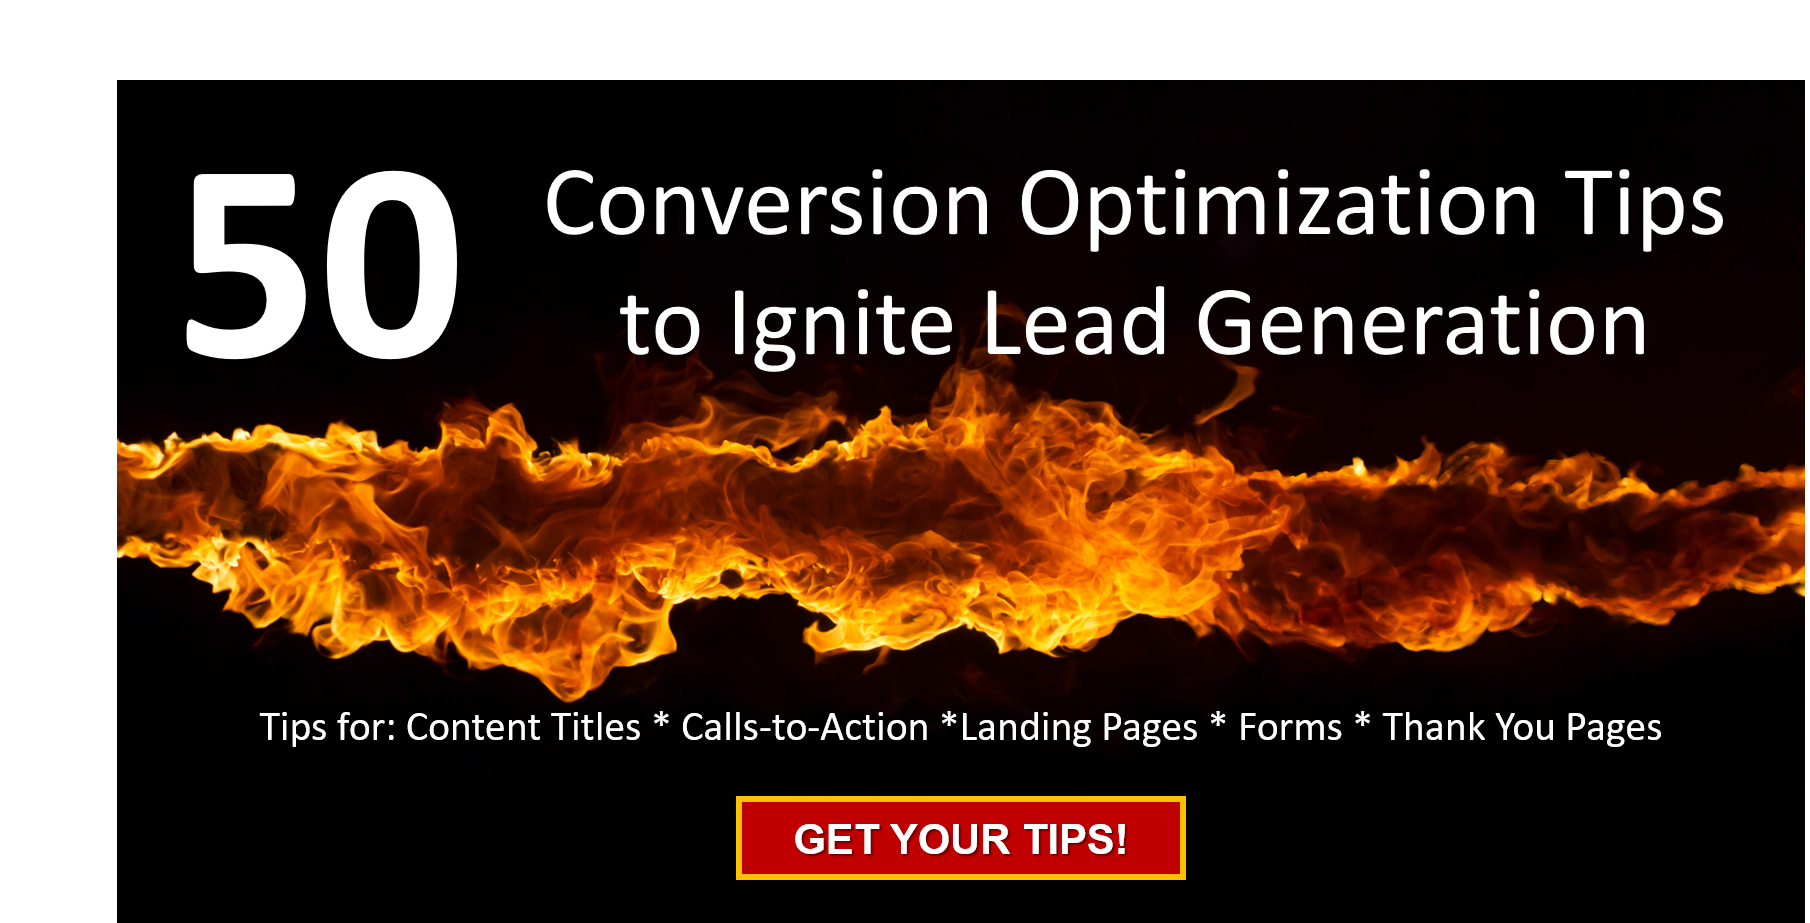 50_Conversion_Optimization_Tips_v3.png